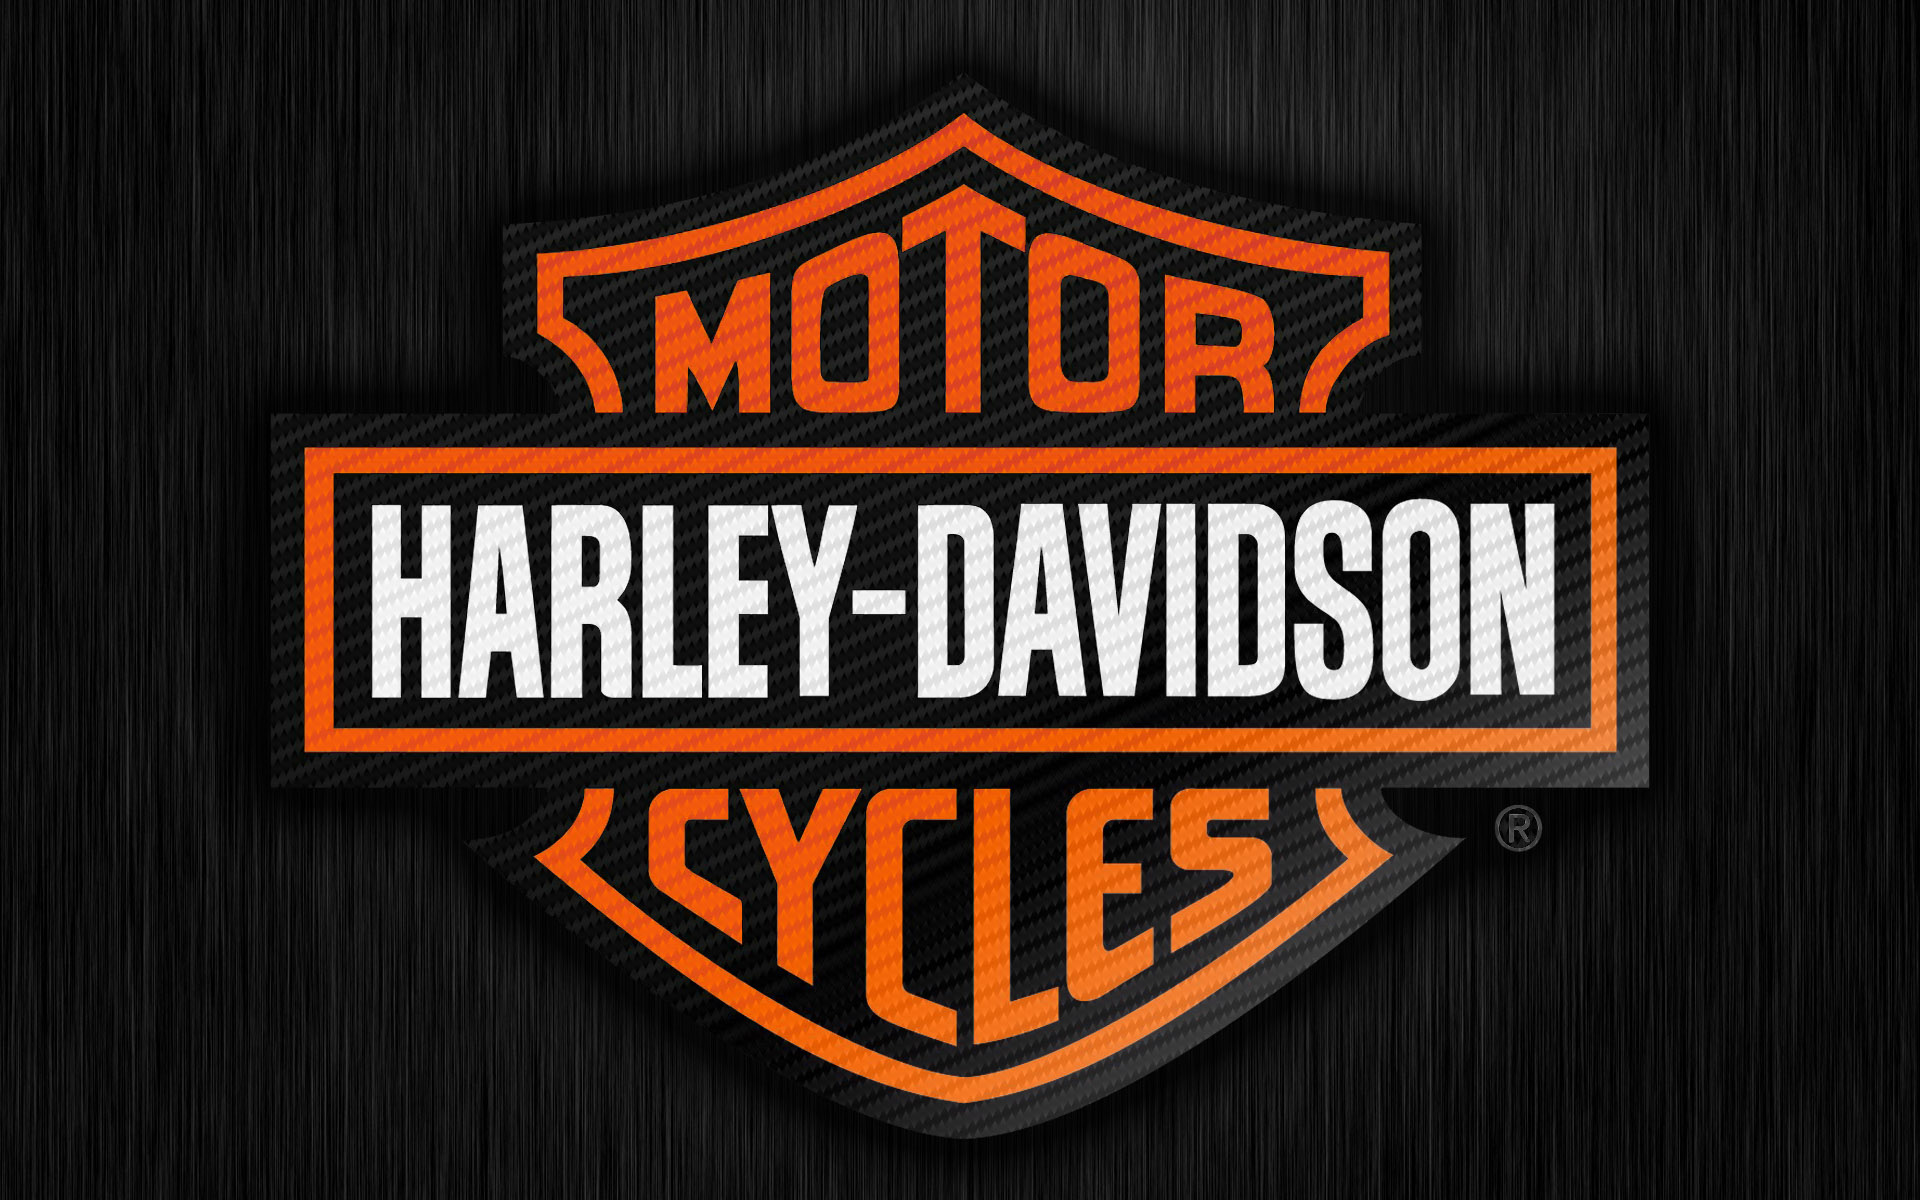 Harley-Davidson To Be Impacted From Outsourcing - Canyon News